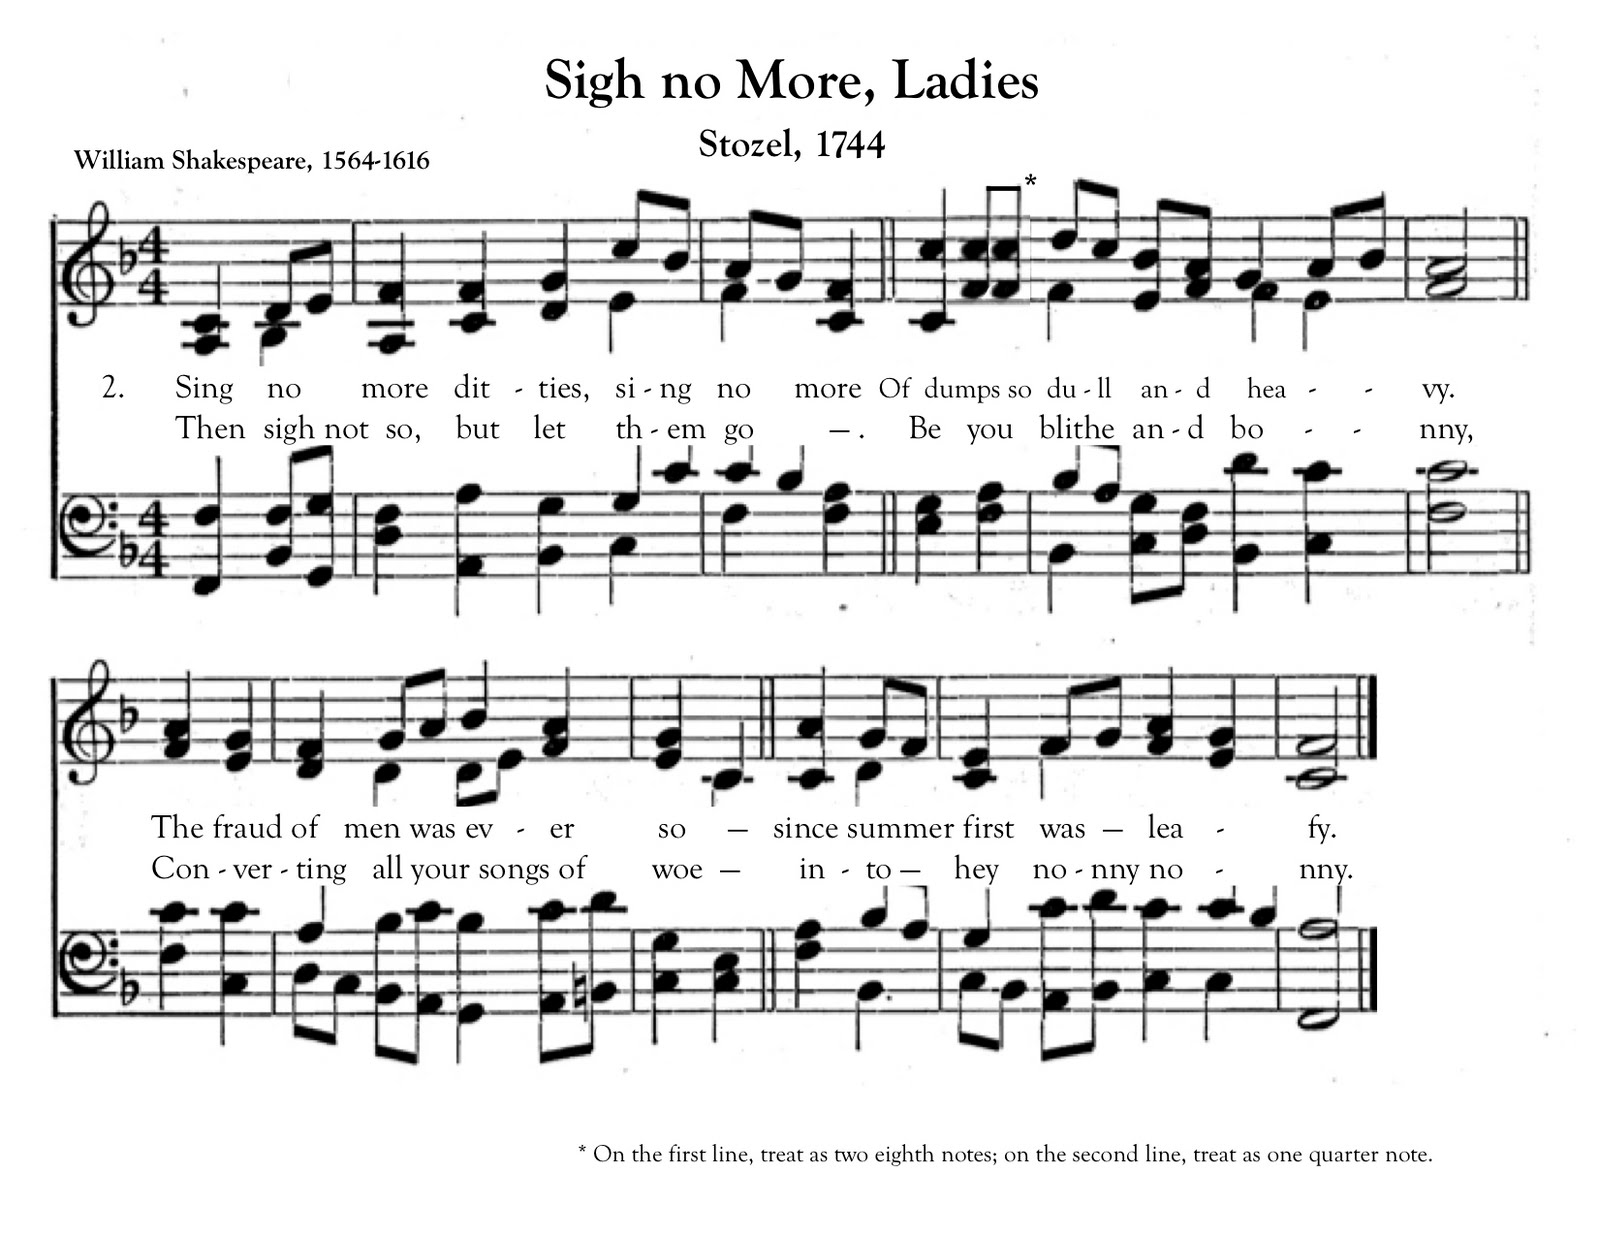 Bardfilm: Sigh No More, Ladies to a New (Old) Tune